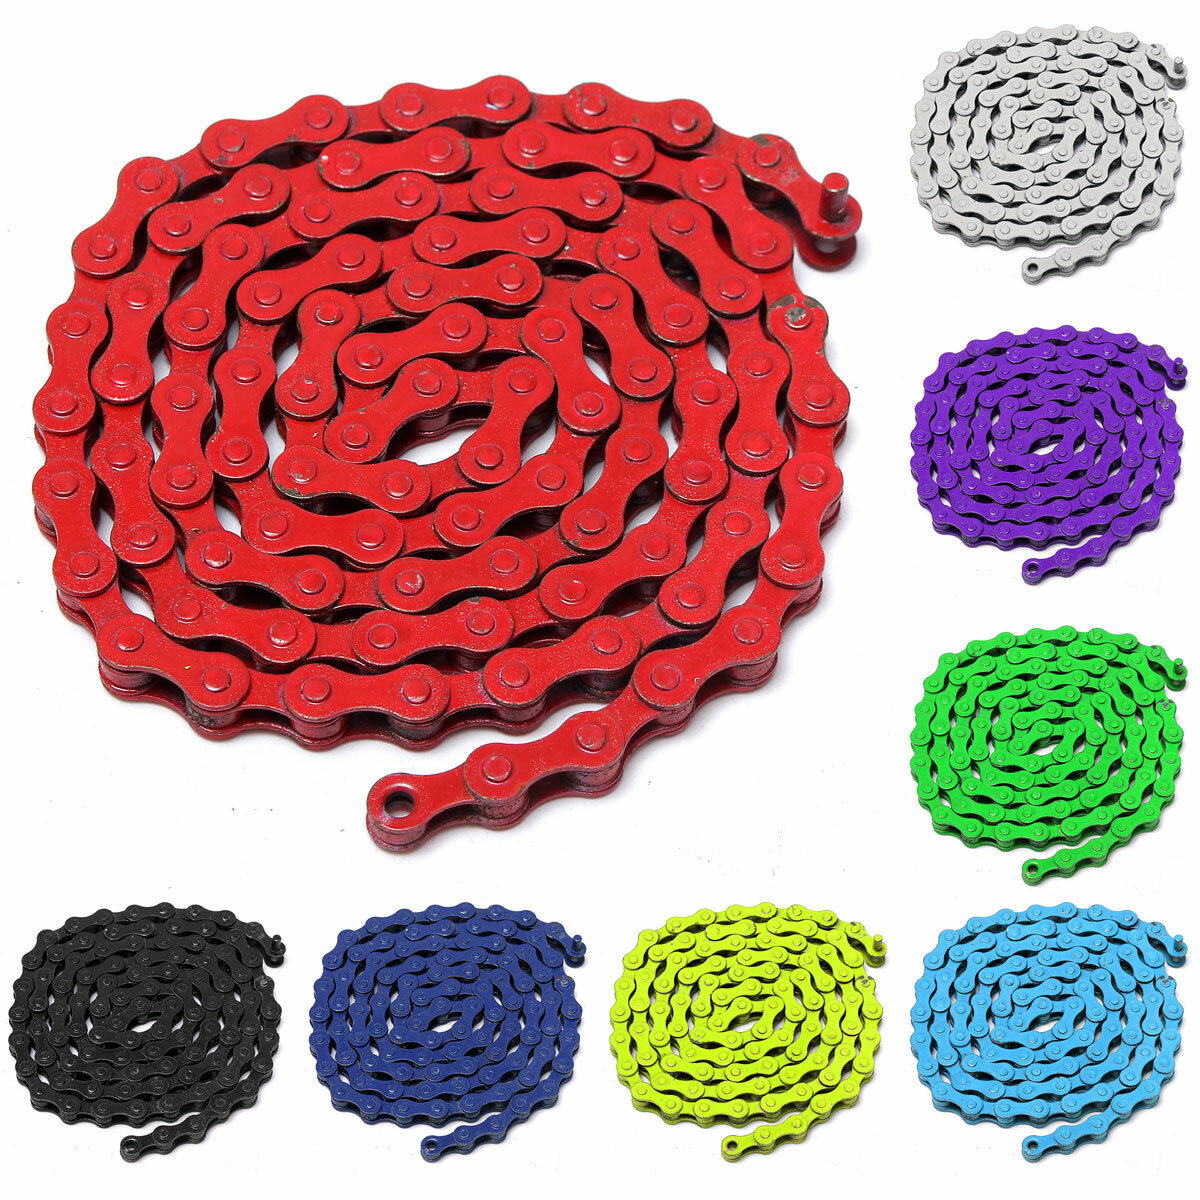 1/2 x 1/8inch 96 Links Single Speed Colorful Chain Fixed Gear MTB BMX Bicycle Bike Sport Road